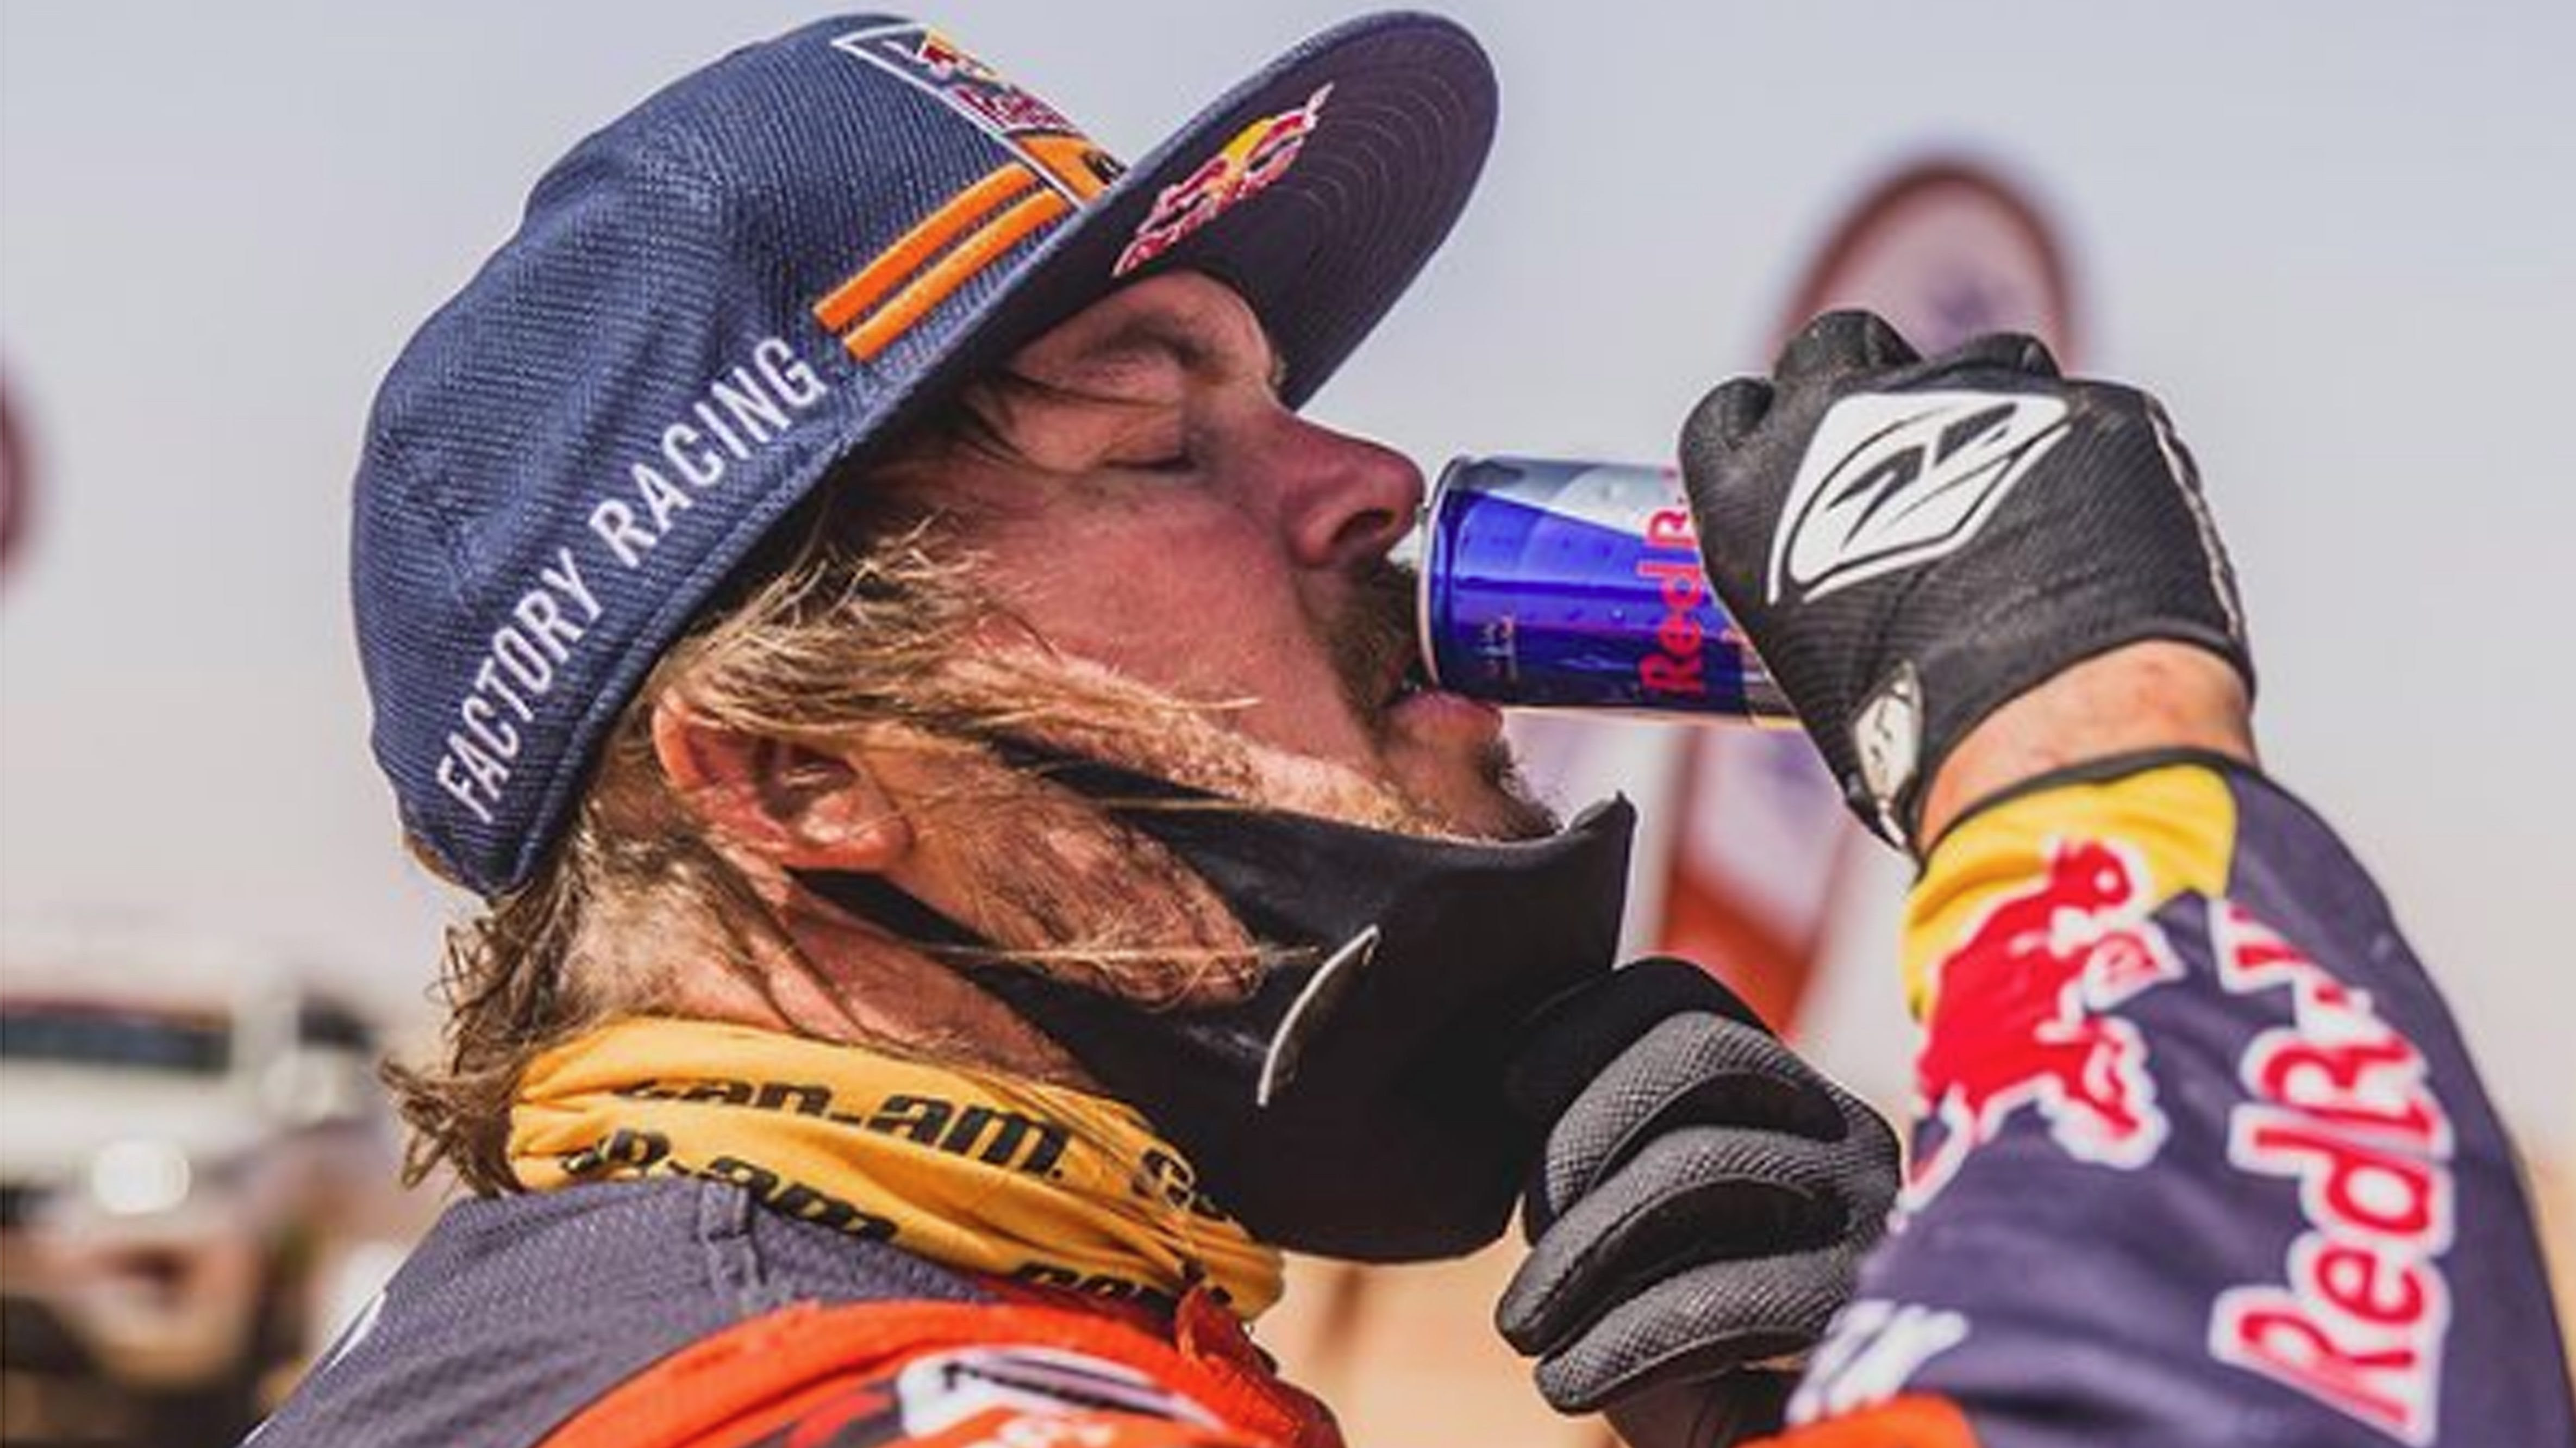 Dakar Rally, Stage 9: Toby Price crashes and retires, Peterhansel gets first win